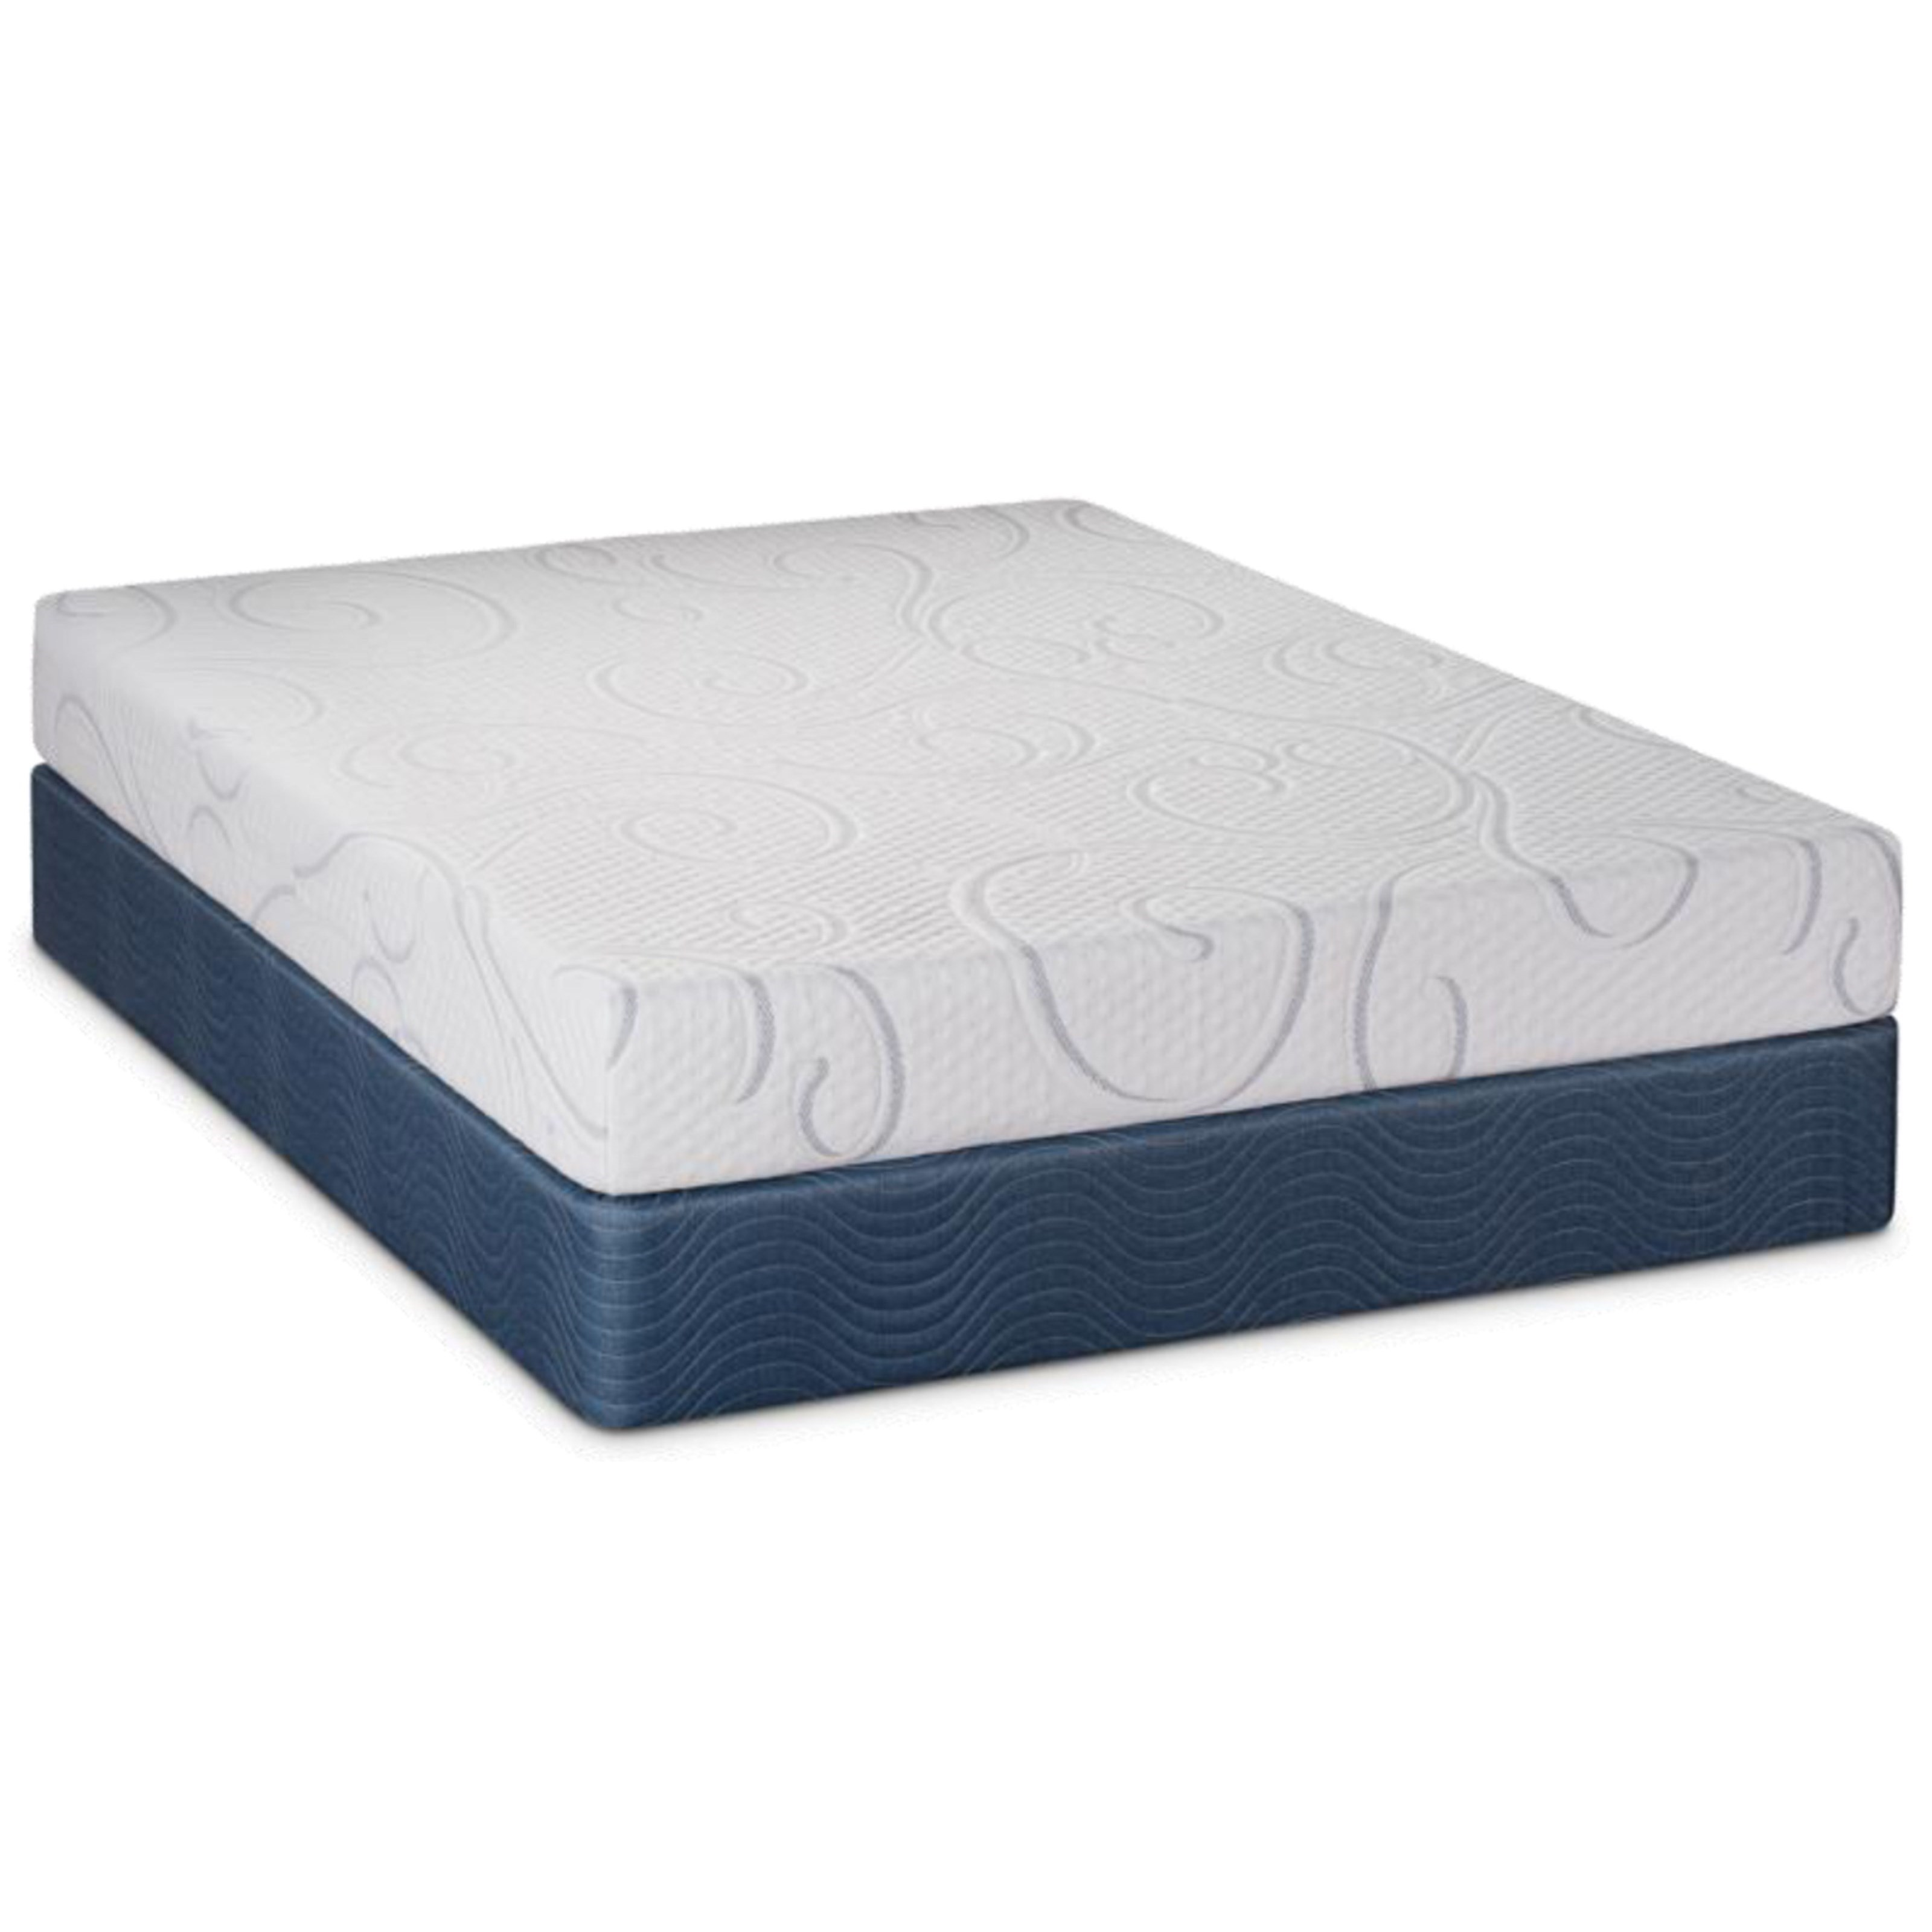 "Cal King 8"" Gel Memory Foam Mattress Set"